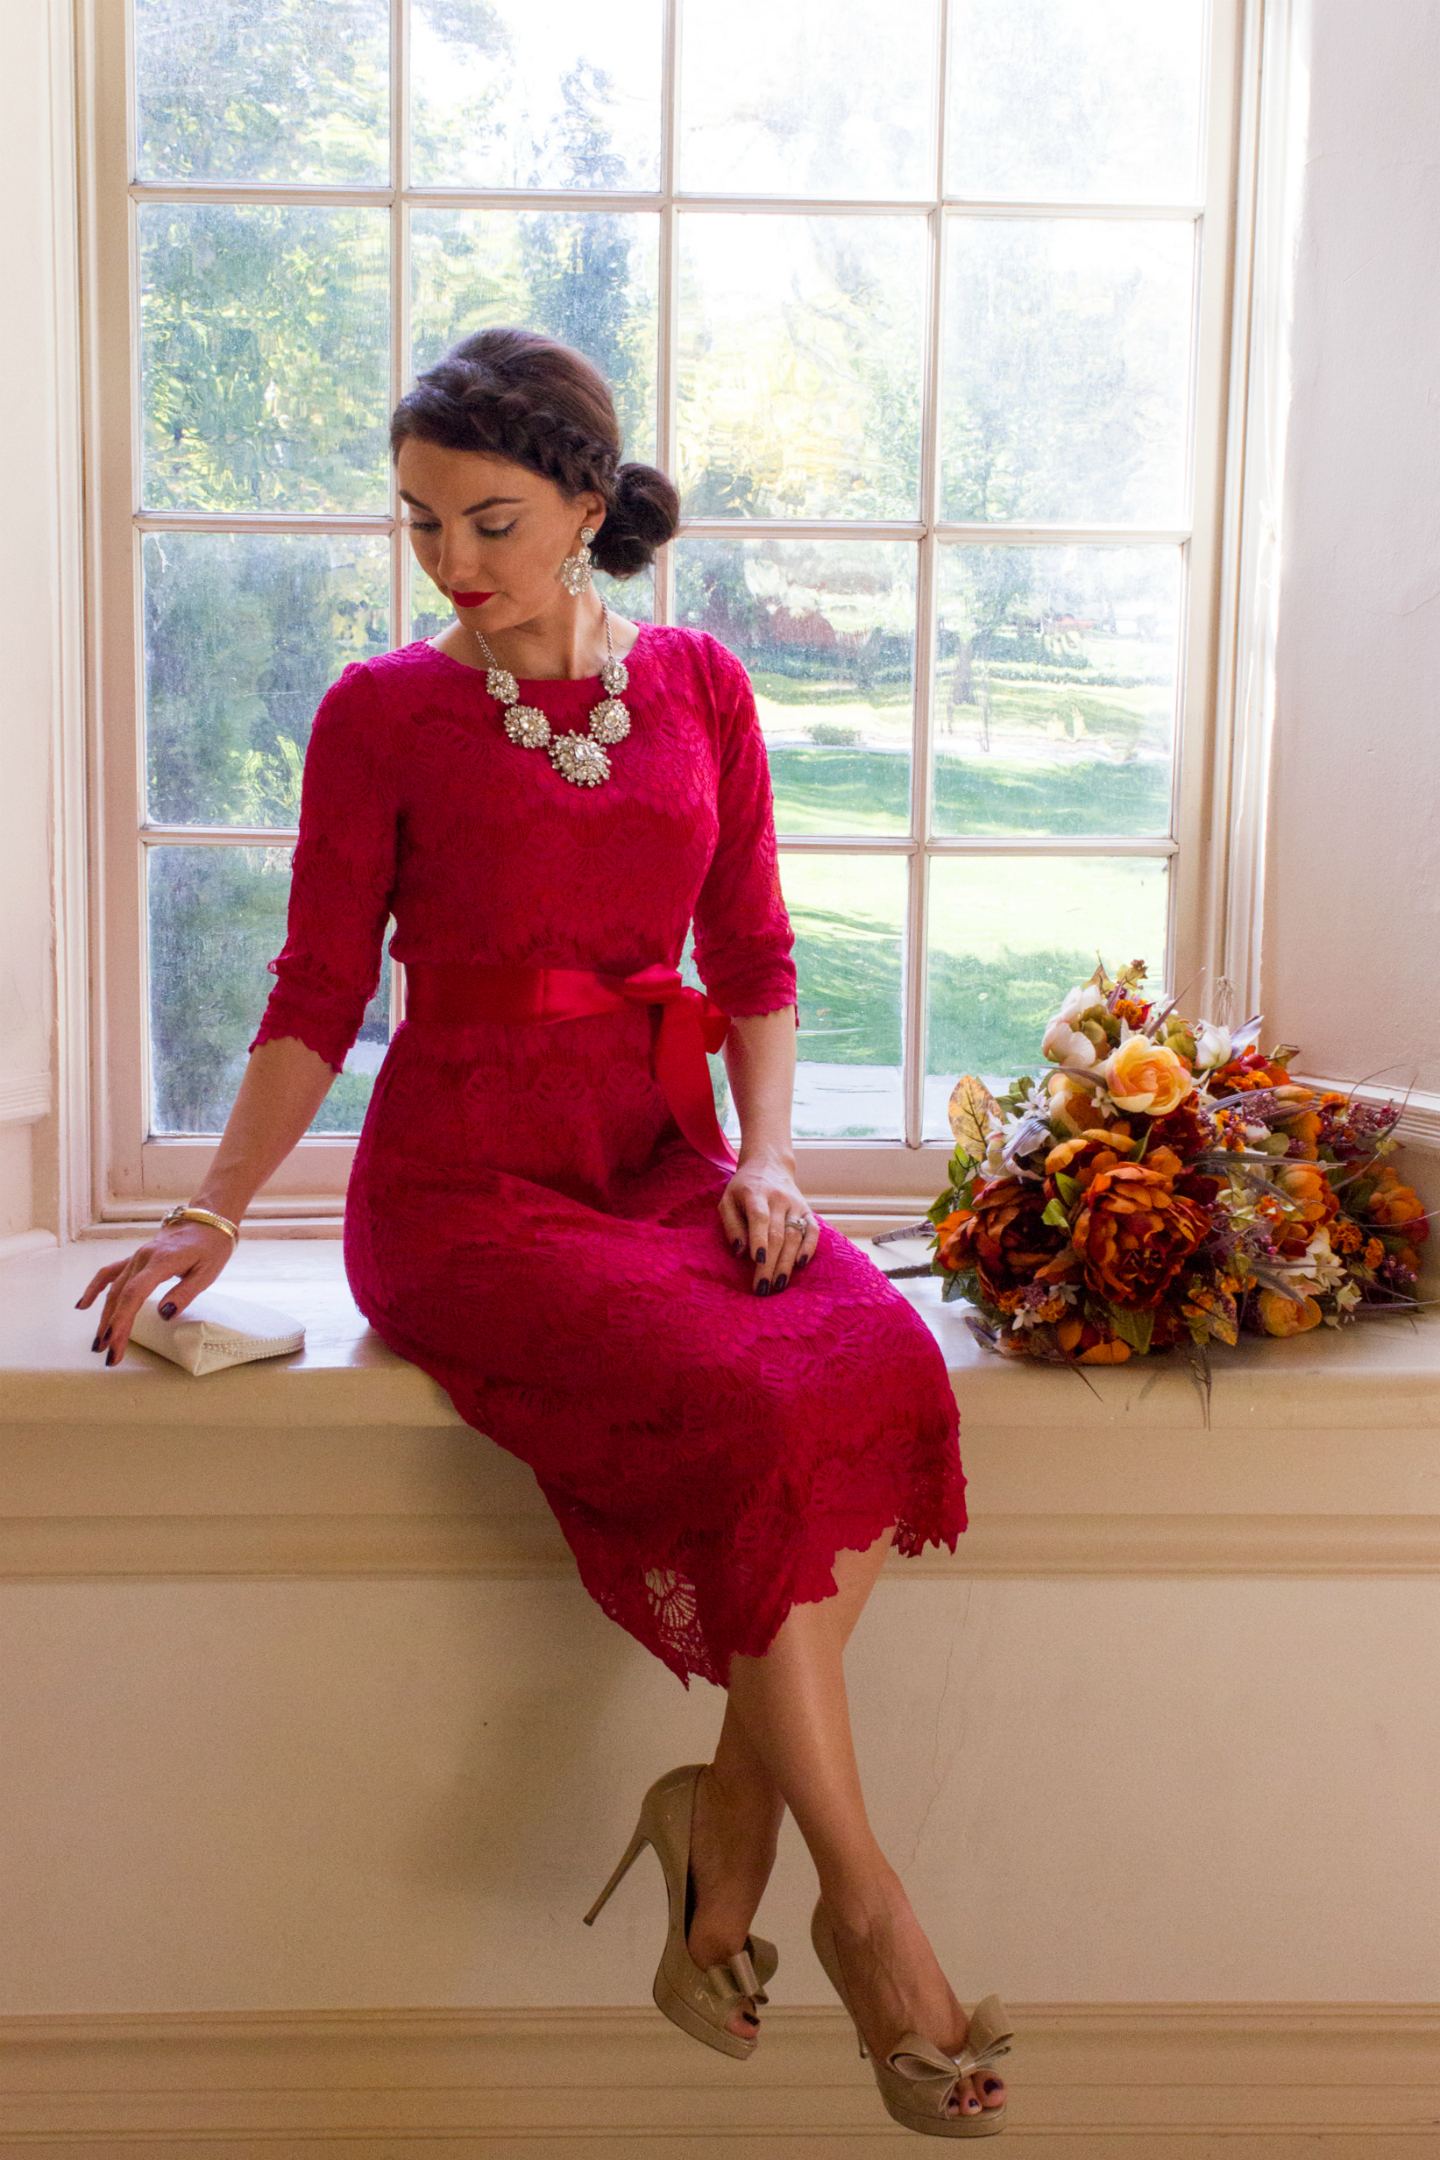 Modest holiday party dress featuring Dainty Jewell's